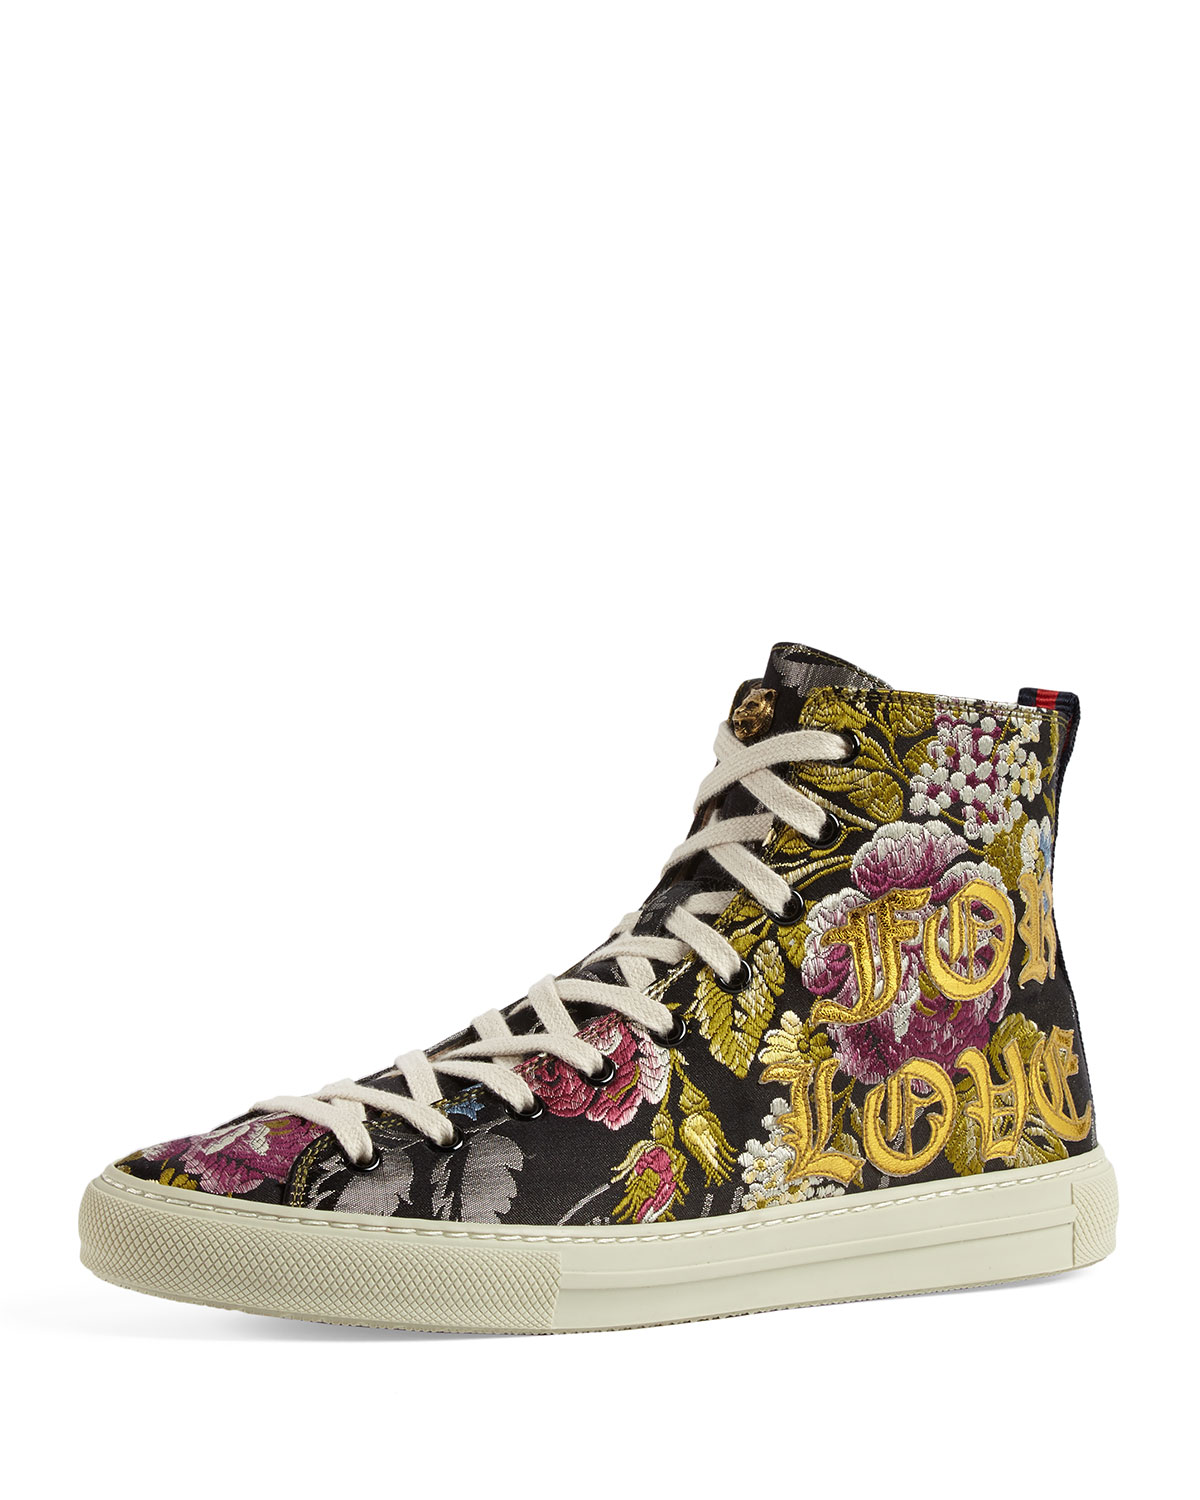 Z1jiNaOuxF Blind For Love Floral Embroidered High-Top Sneakers k0eevarmS